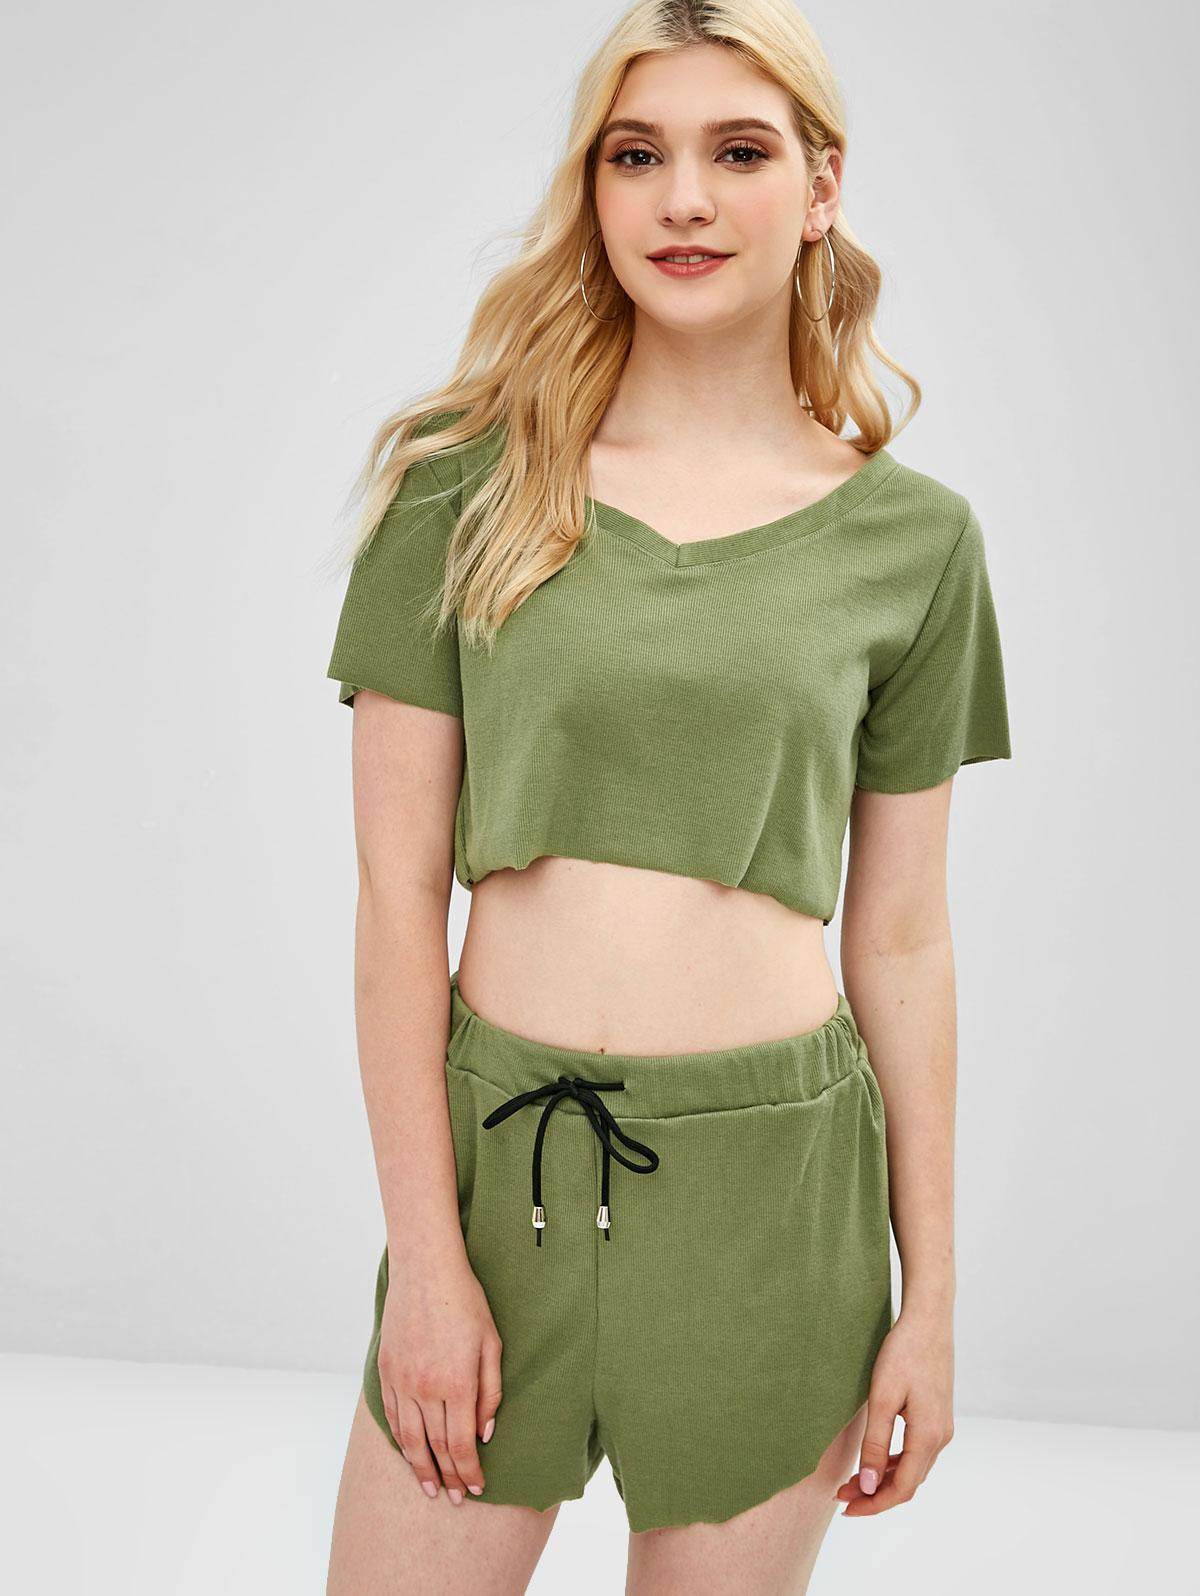 Ribbed Sporty Crop Tee and Shorts Two Piece Set, Camouflage green